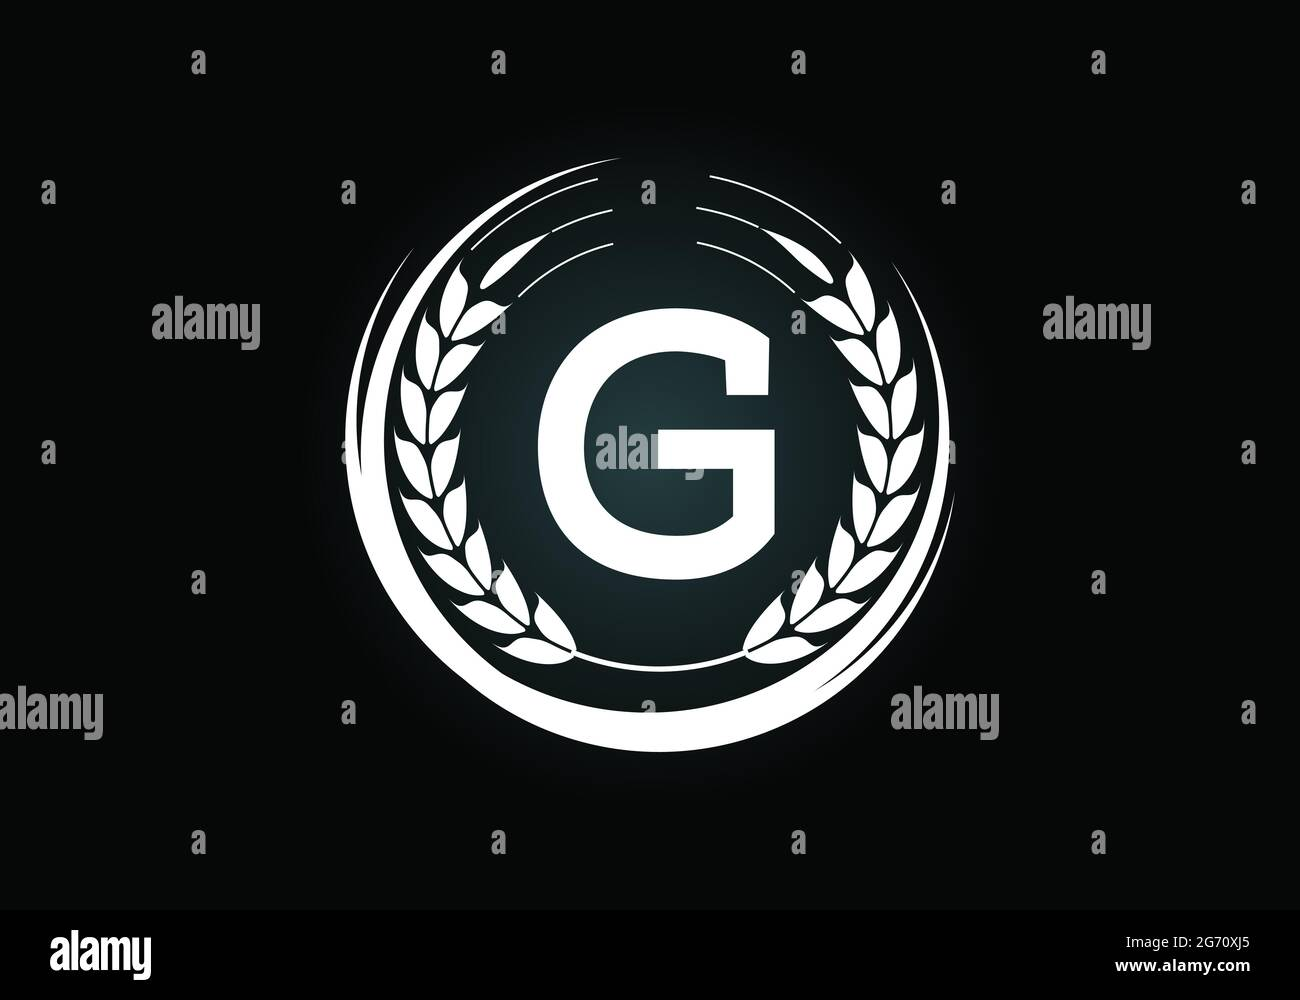 Initial letter G sign symbol with wheat ears wreath. Organic wheat farming  logo design concept. Agriculture logo design vector template Stock Vector  Image & Art - Alamy